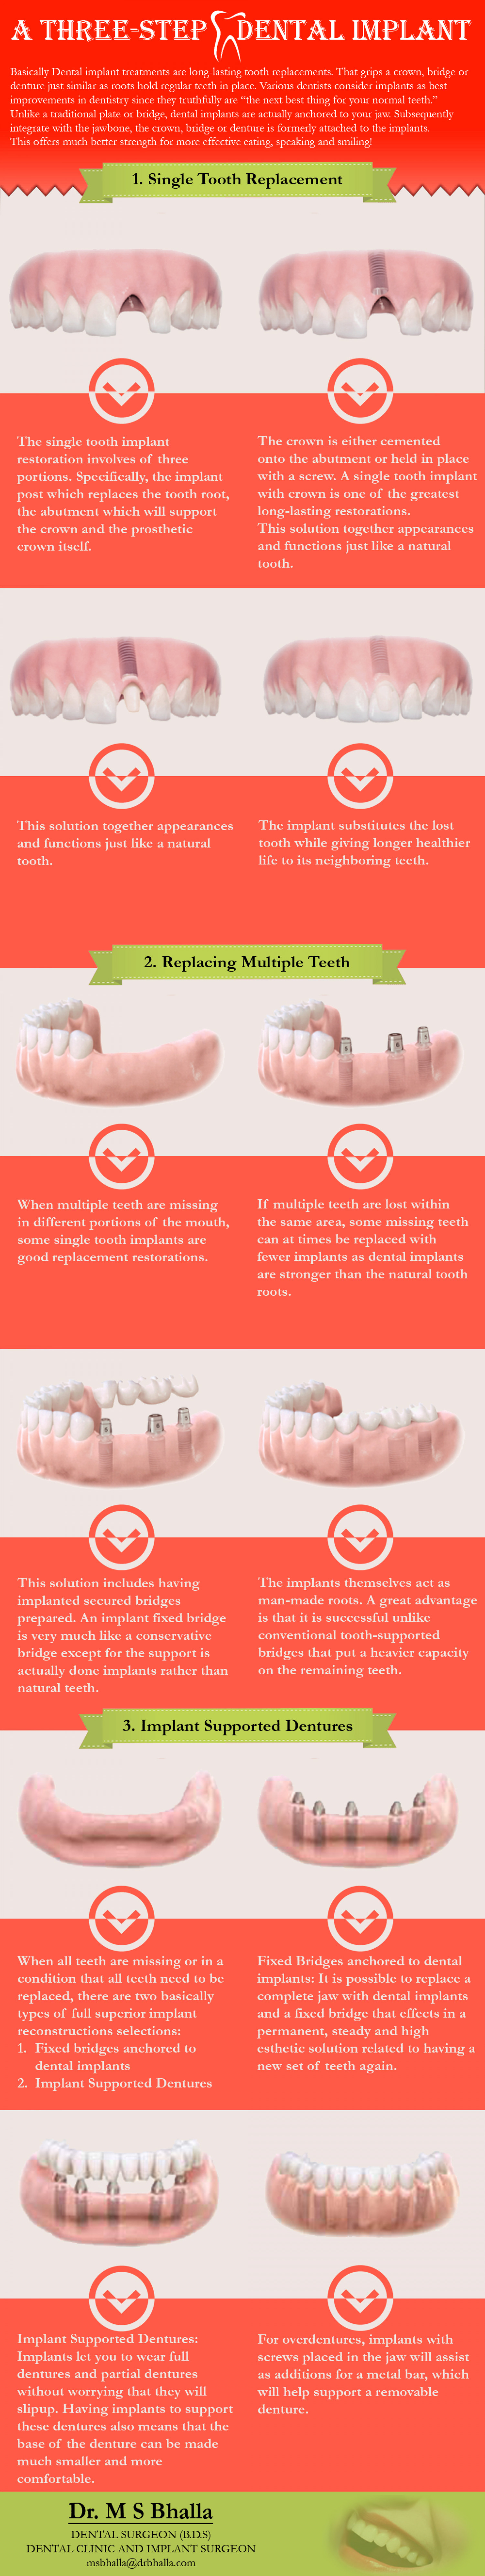 A Three Step Dental Implant Infographic